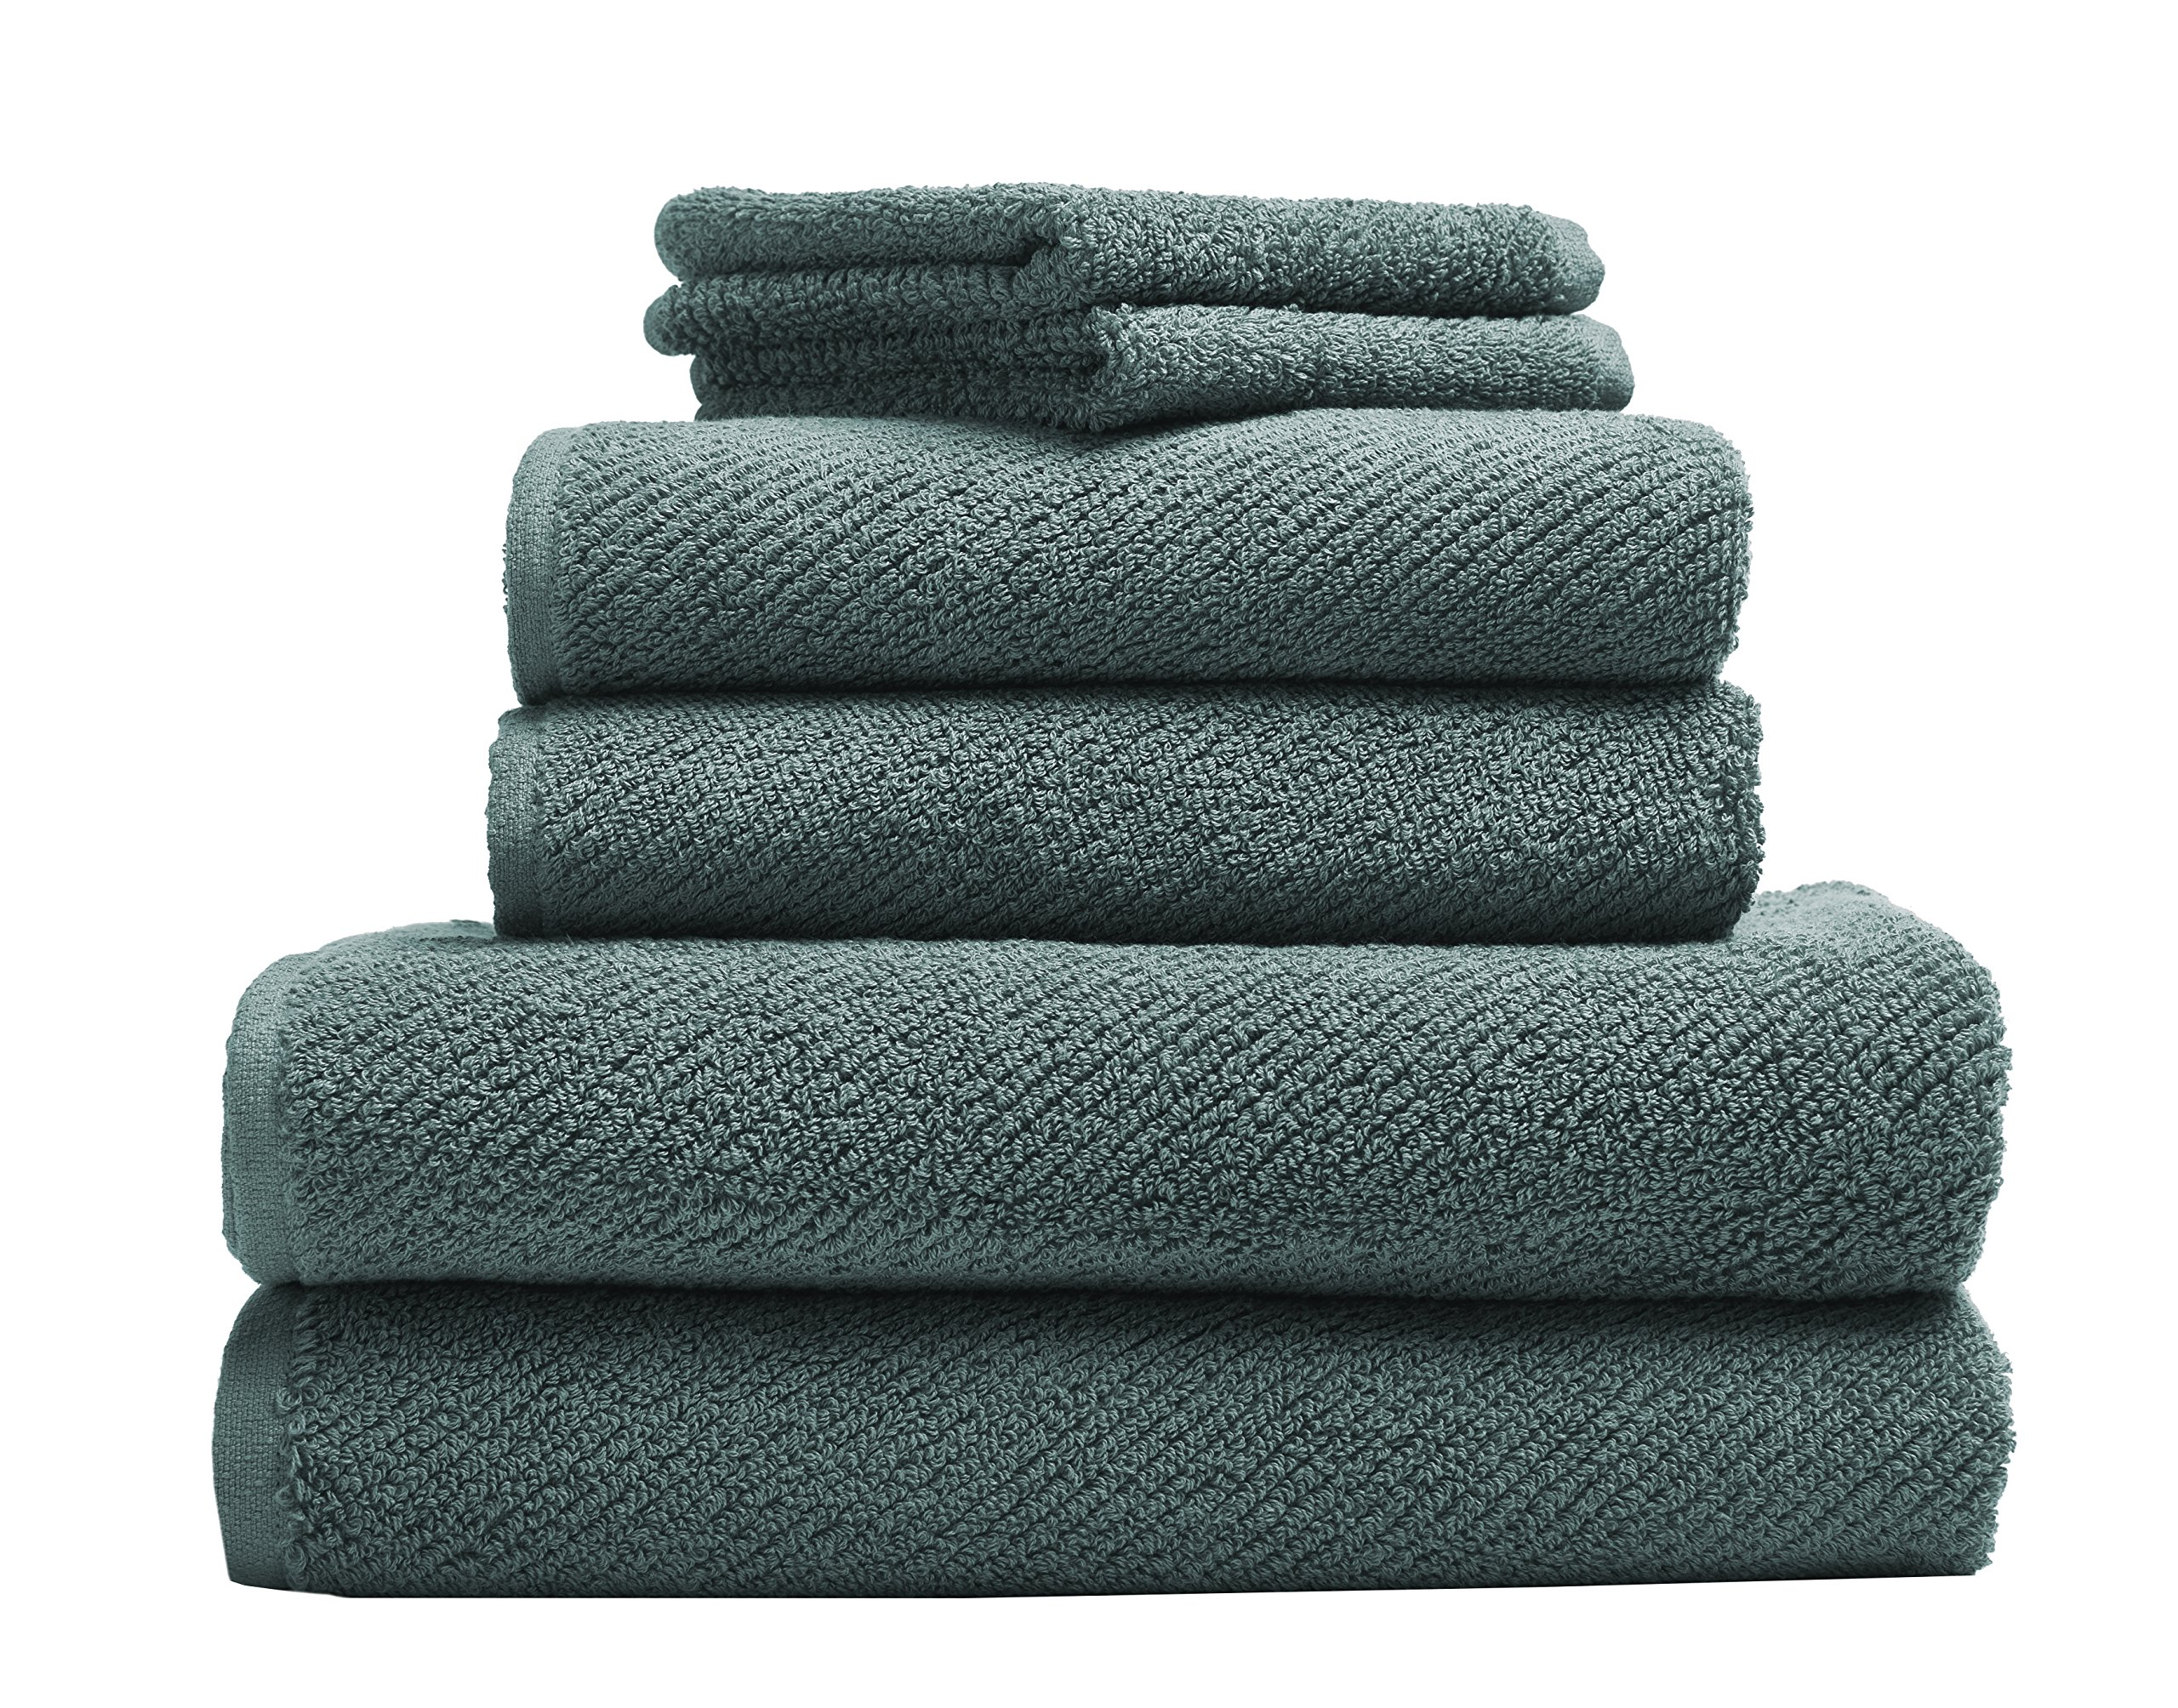 Coyuchi 1019021 6 Piece Organic Air Weight Towel Set, Deep Dusty Aqua